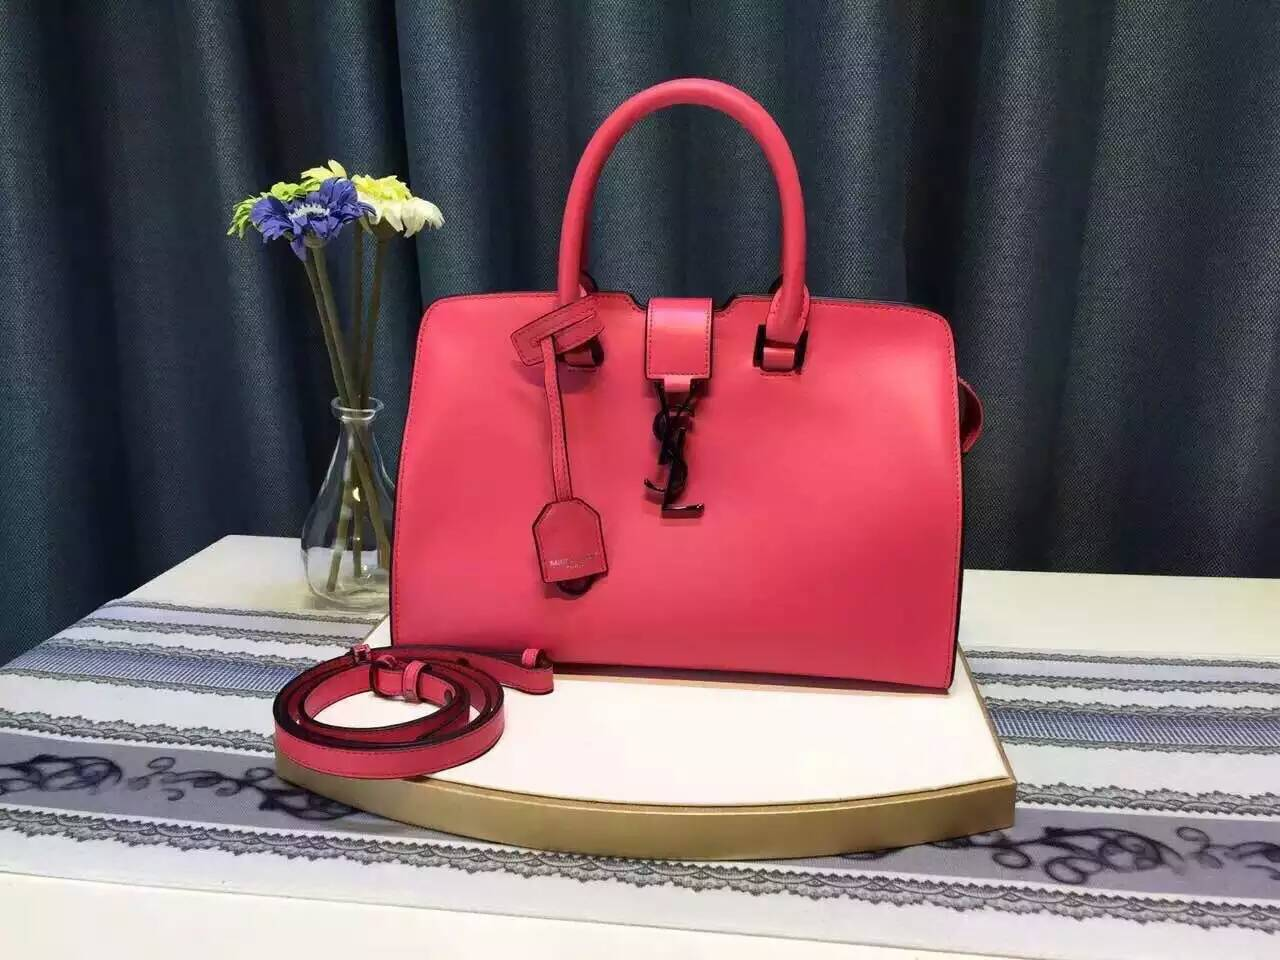 Limited Edition!2016 YSL Collection Outlet-Saint Laurent Small Monogram Cabas Bag in Fuchsia Leather